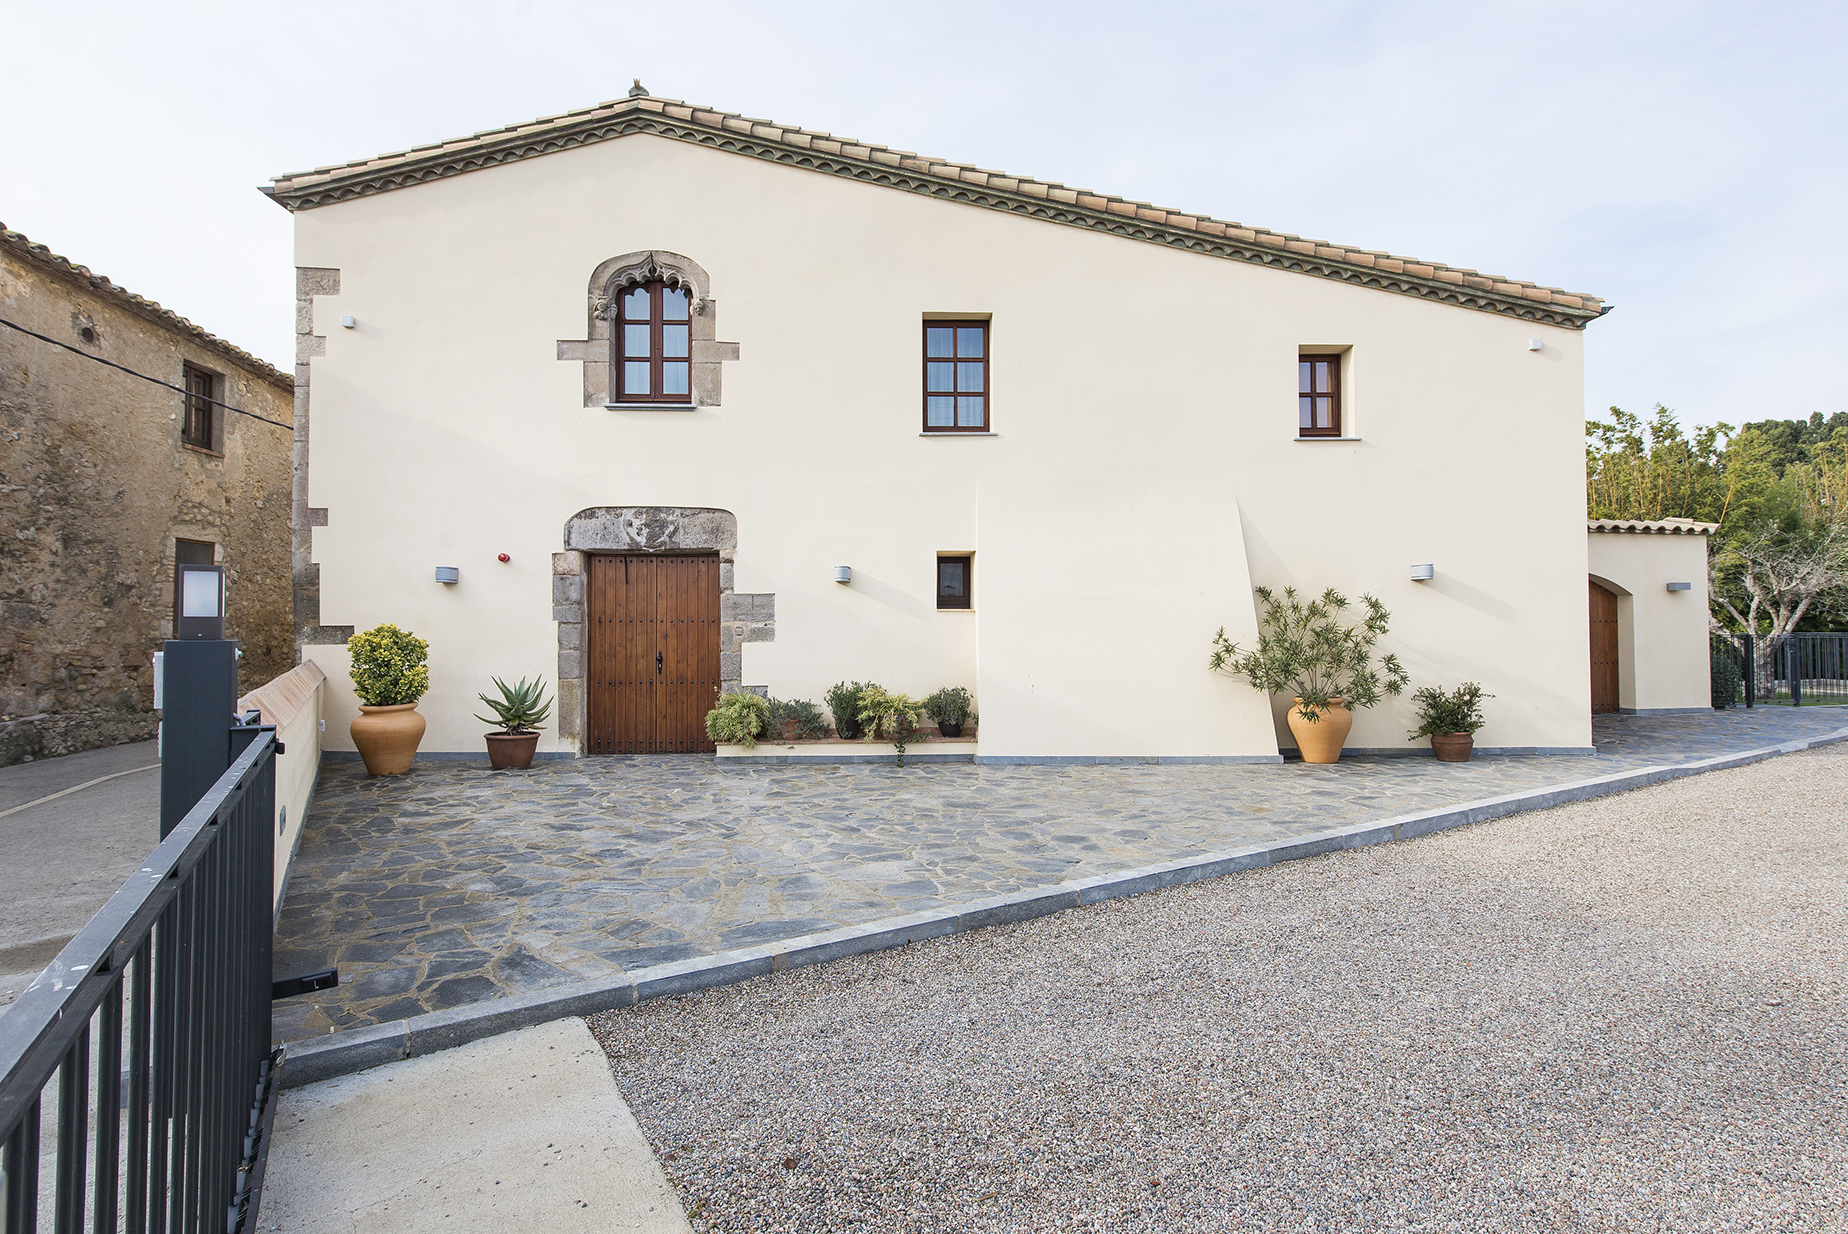 Single Family Home for Sale at Can Pico, Pelacalc Other Cities Alt Emporda, Barcelona, 17600 Spain